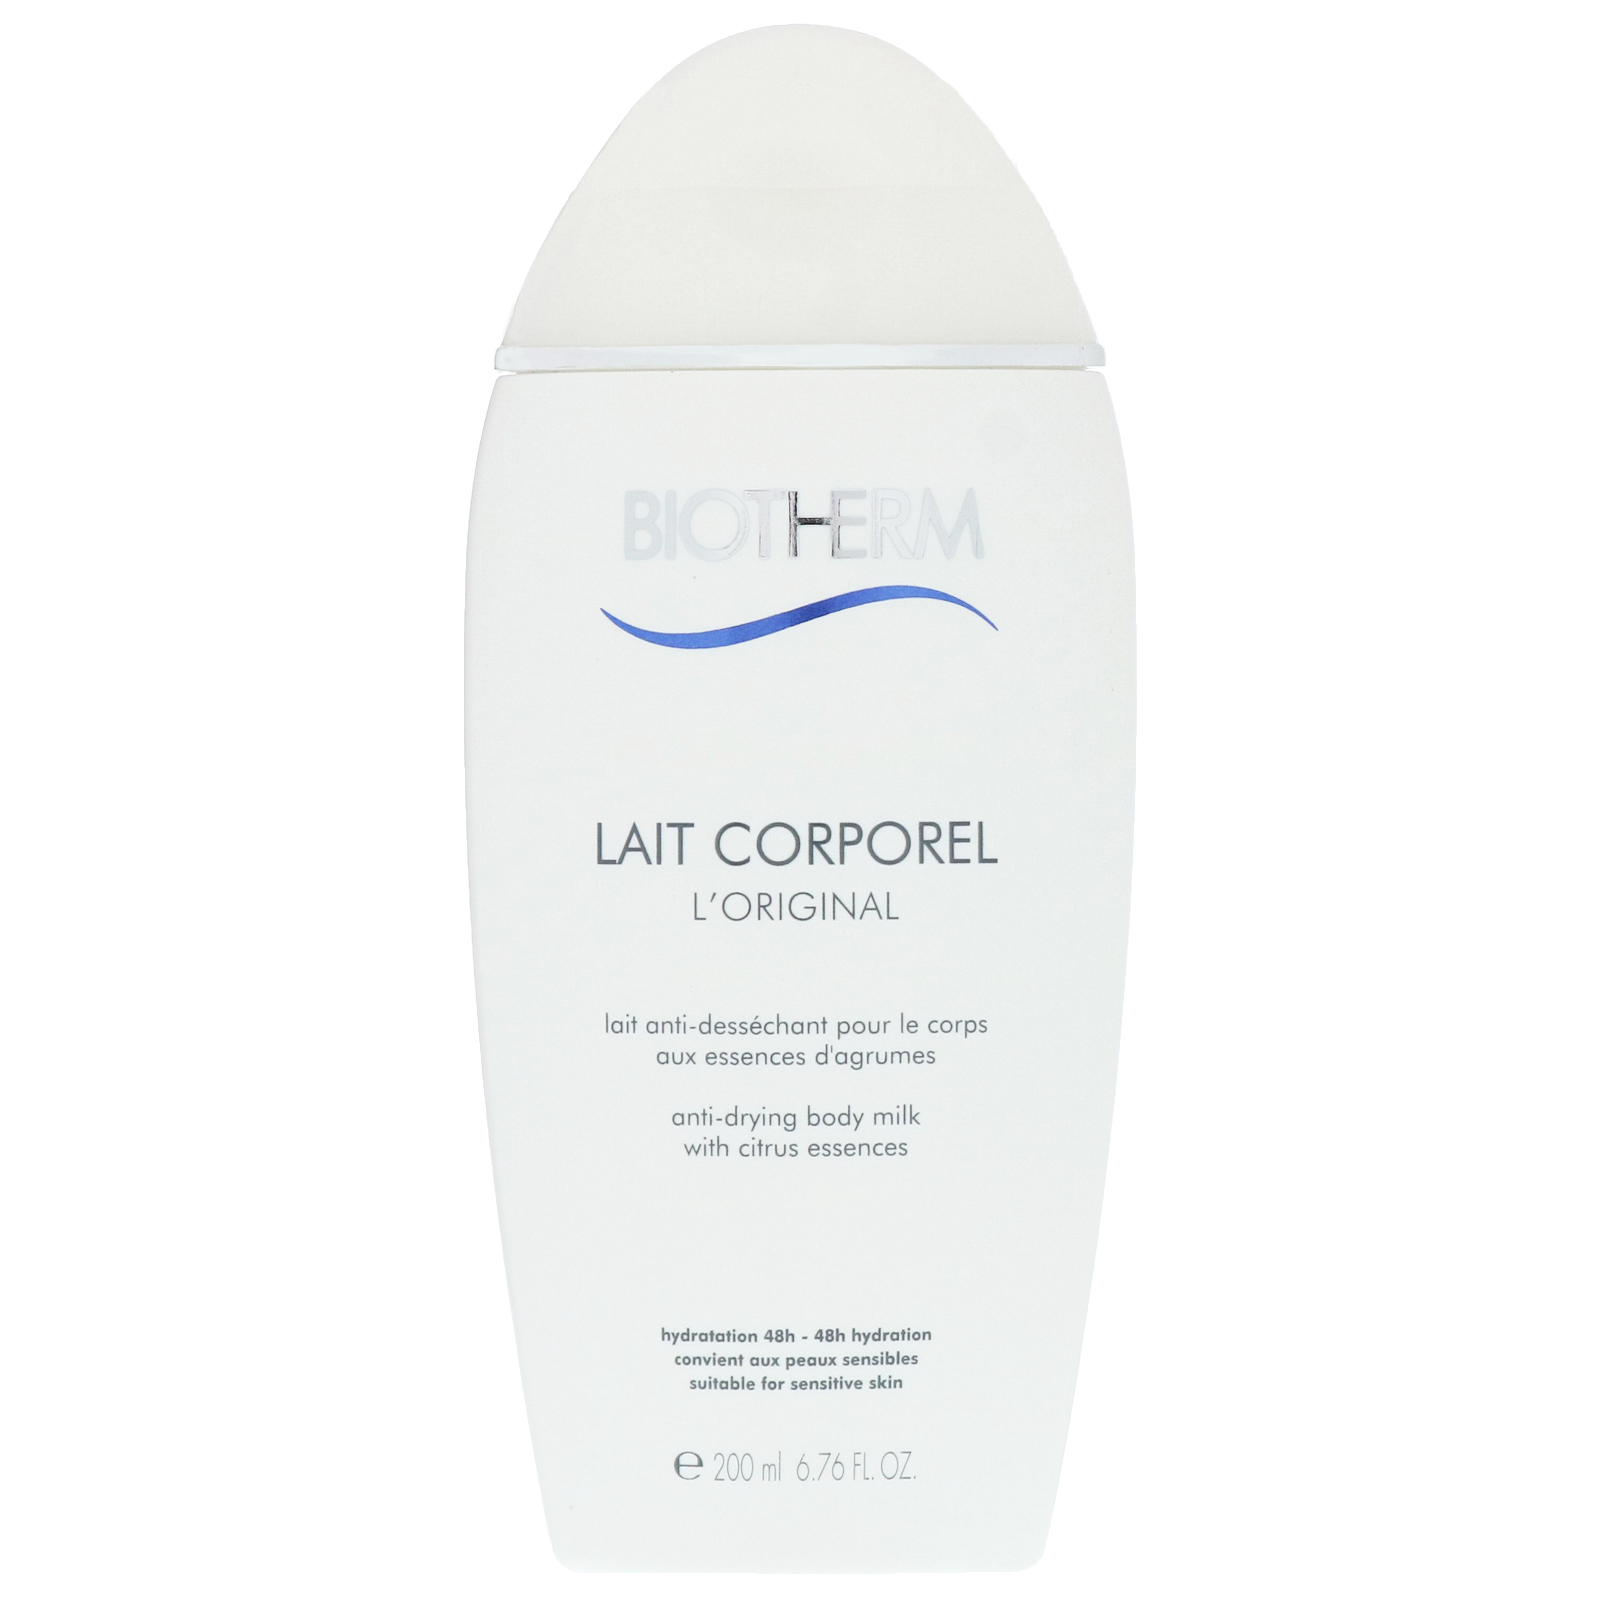 Biotherm Lait Corporel Anti-Drying Body Milk with Citrus Extracts 200ml